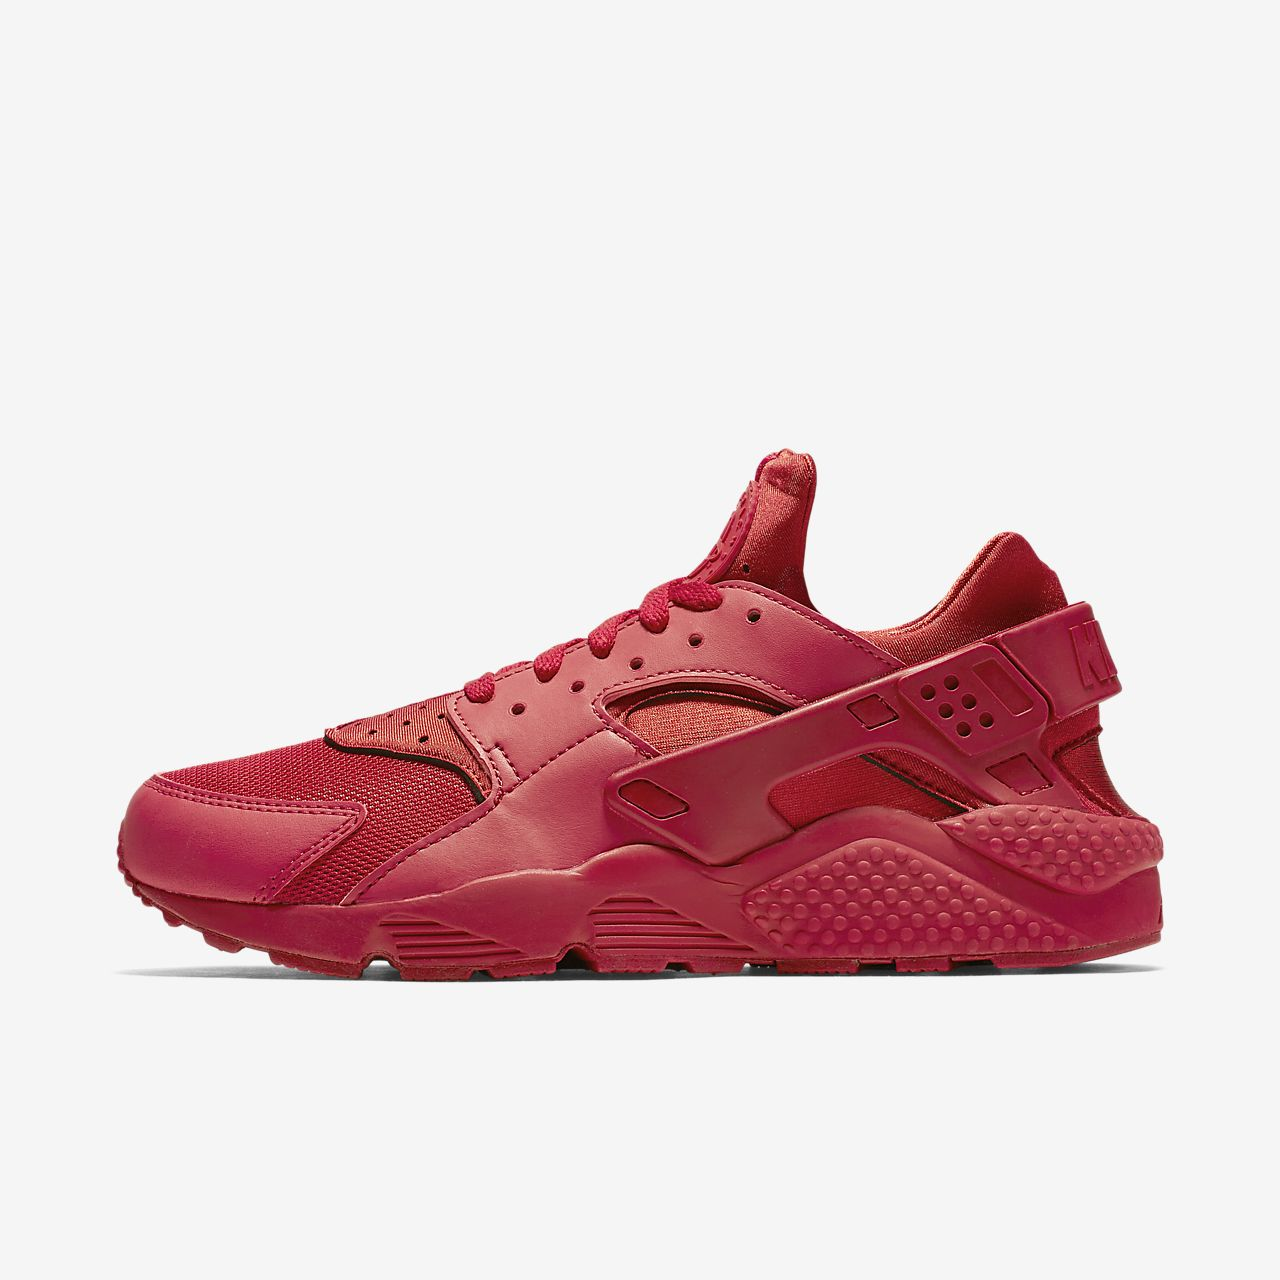 9009709c3ea2 Nike Air Huarache Men s Shoe. Nike.com